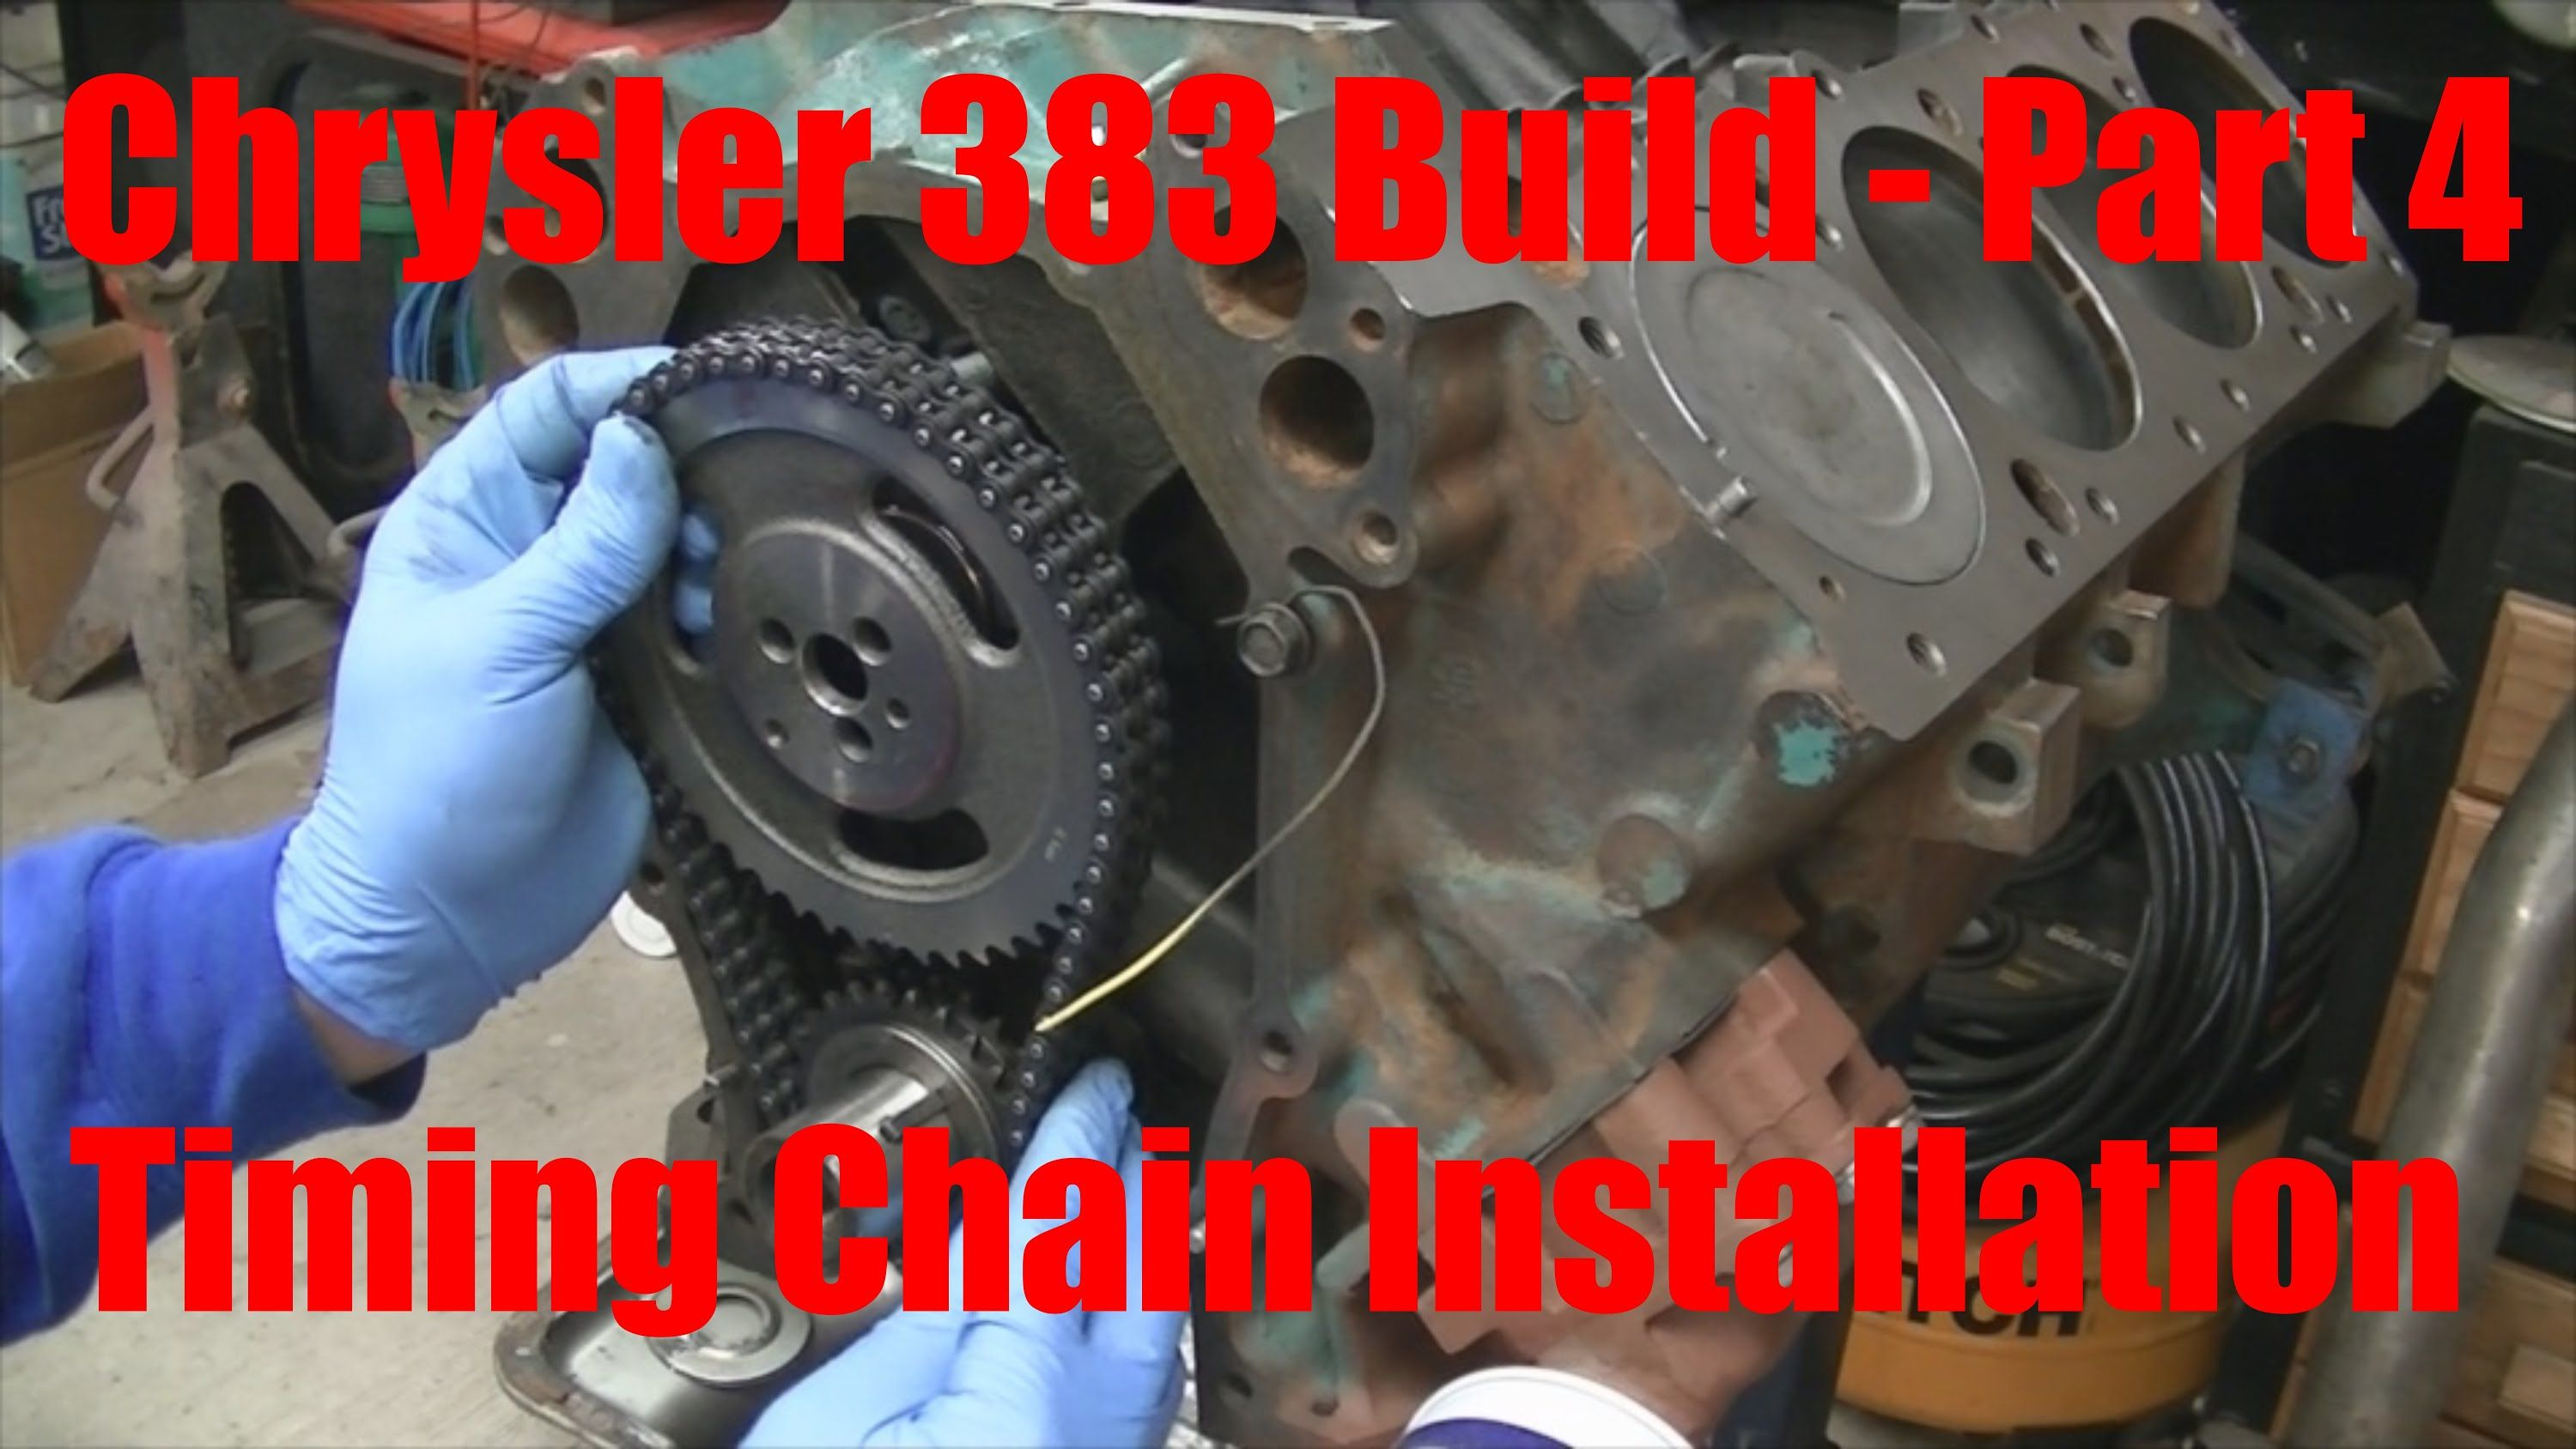 Joe S Garage 383 Engine Rebuild Part 4 Timing Chain Installation Engineering Engine Rebuild Parts